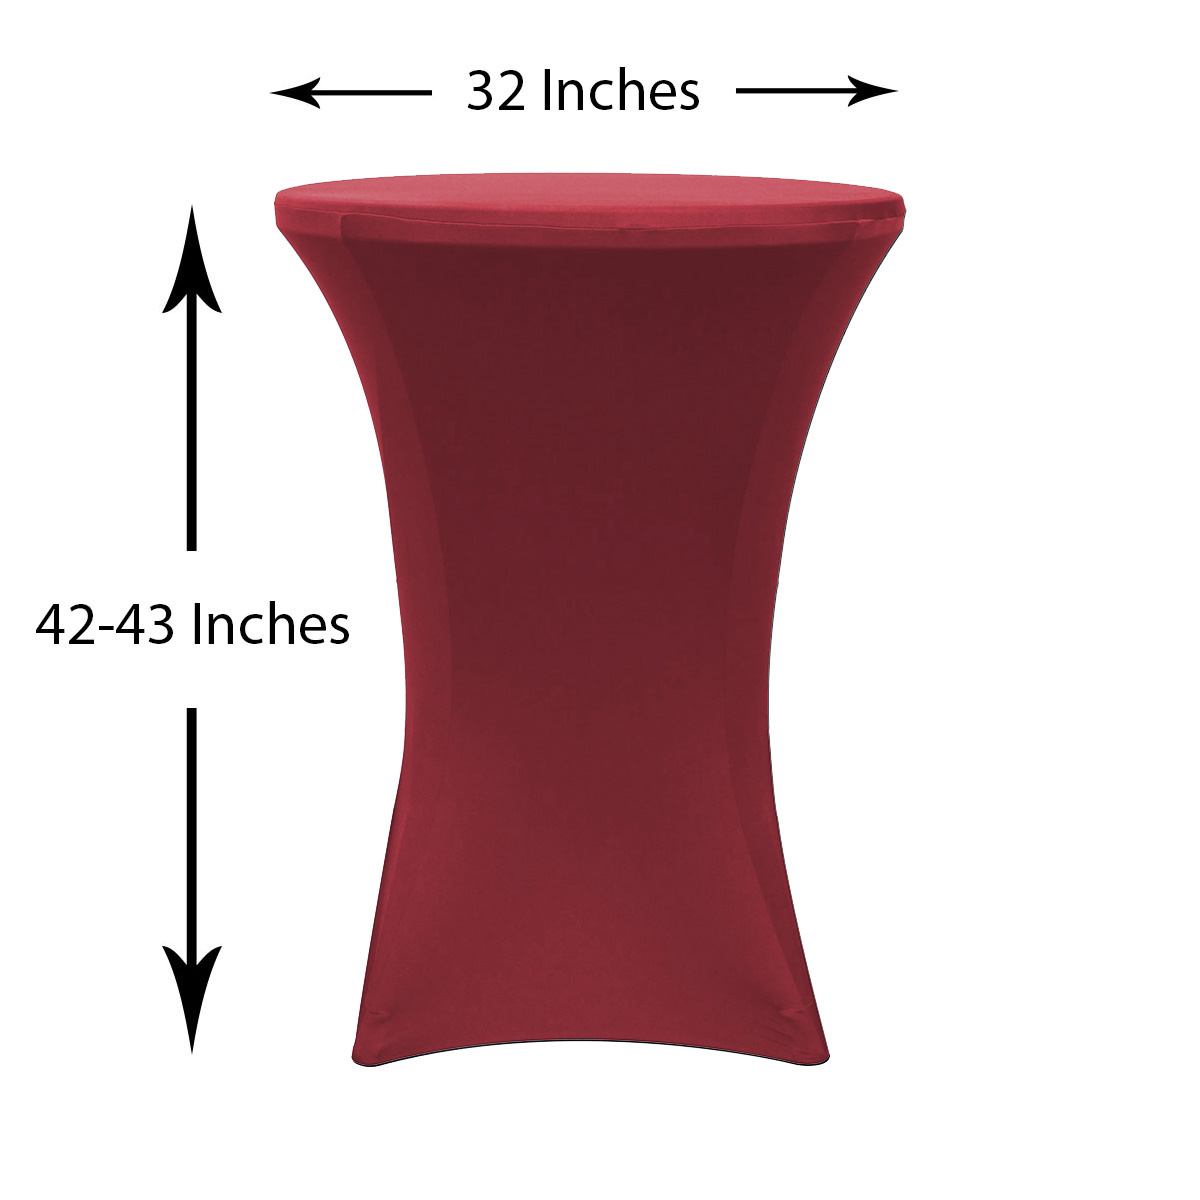 32-inch-highboy-cocktail-spandex-table-covers-burgundy-dimensions.jpg